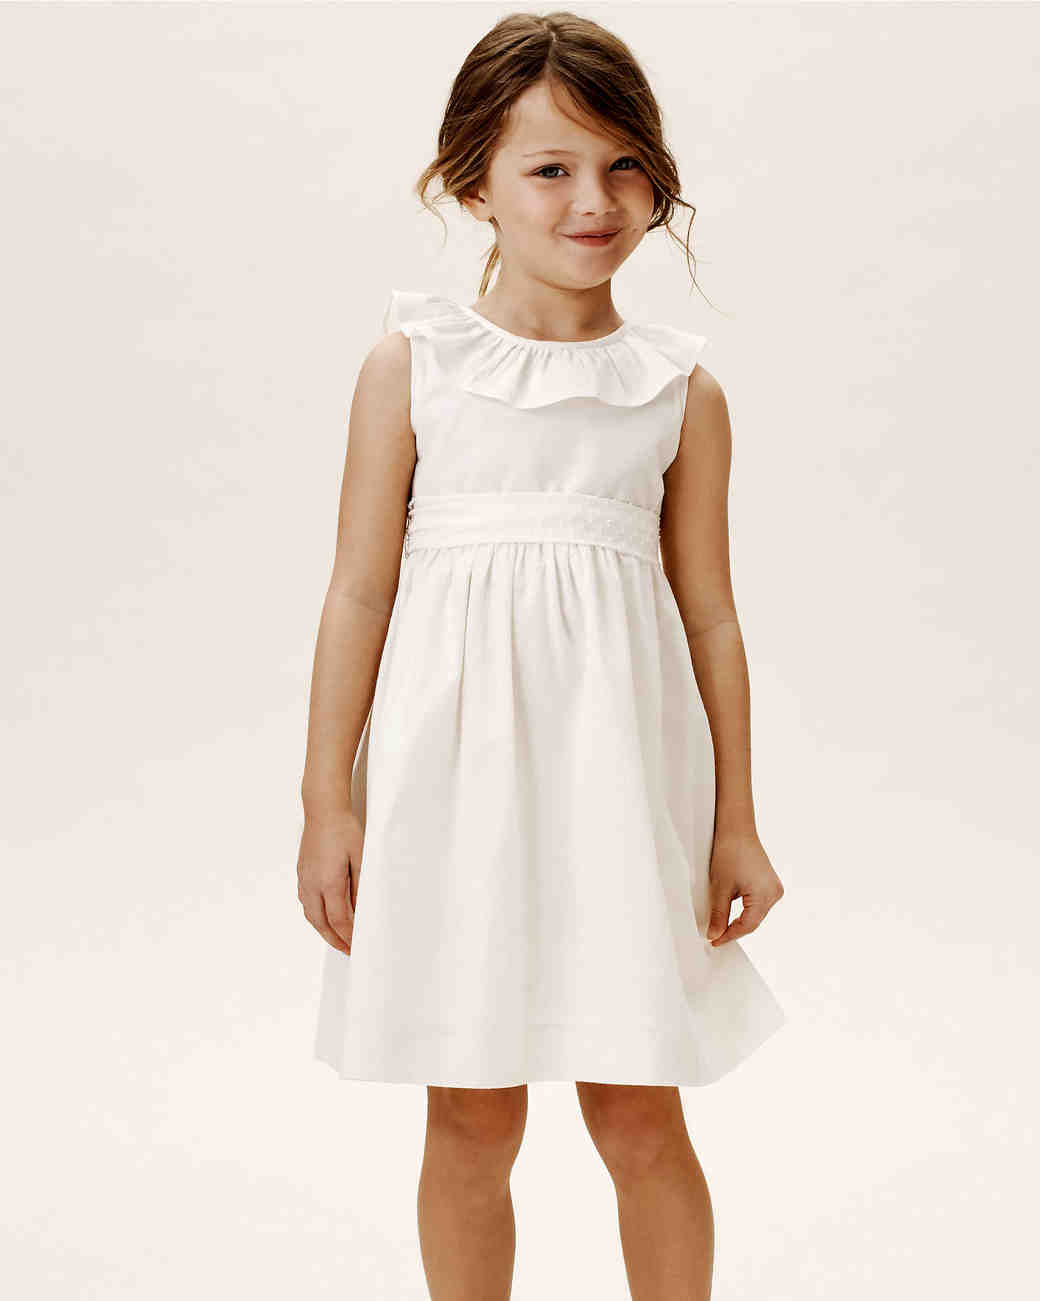 summer flower girl outfit simple white dress